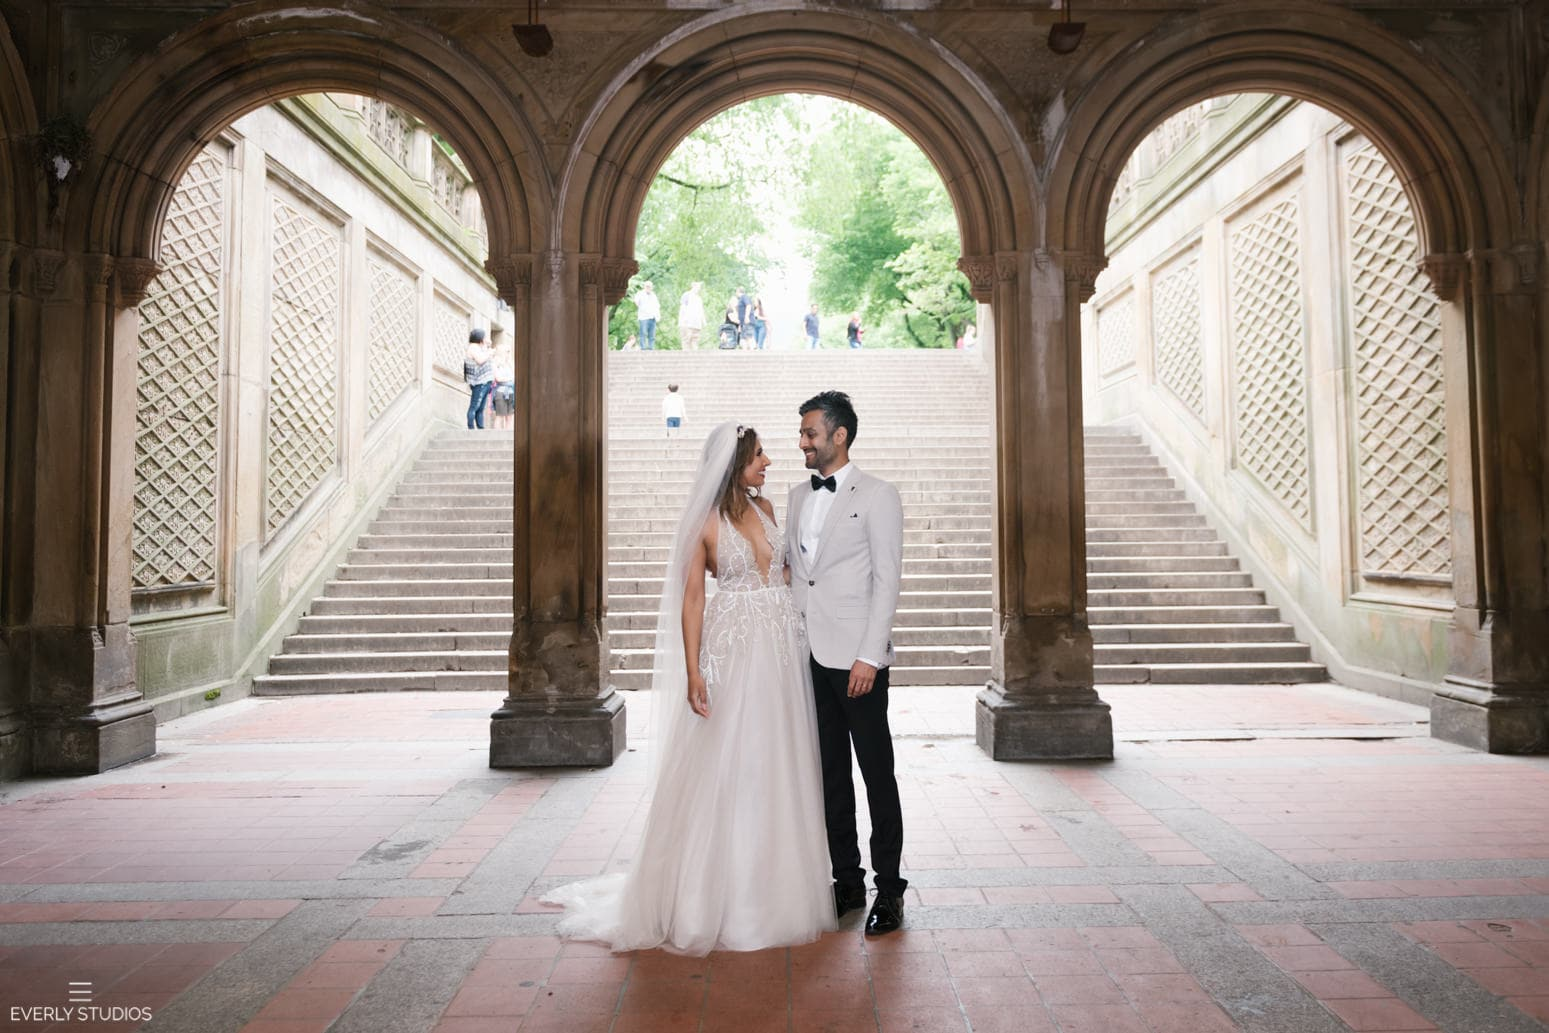 Small Central Park wedding at Bethesda Terrace and Bethesda Fountain. Photo by NYC wedding photographer Everly Studios, www.everlystudios.com